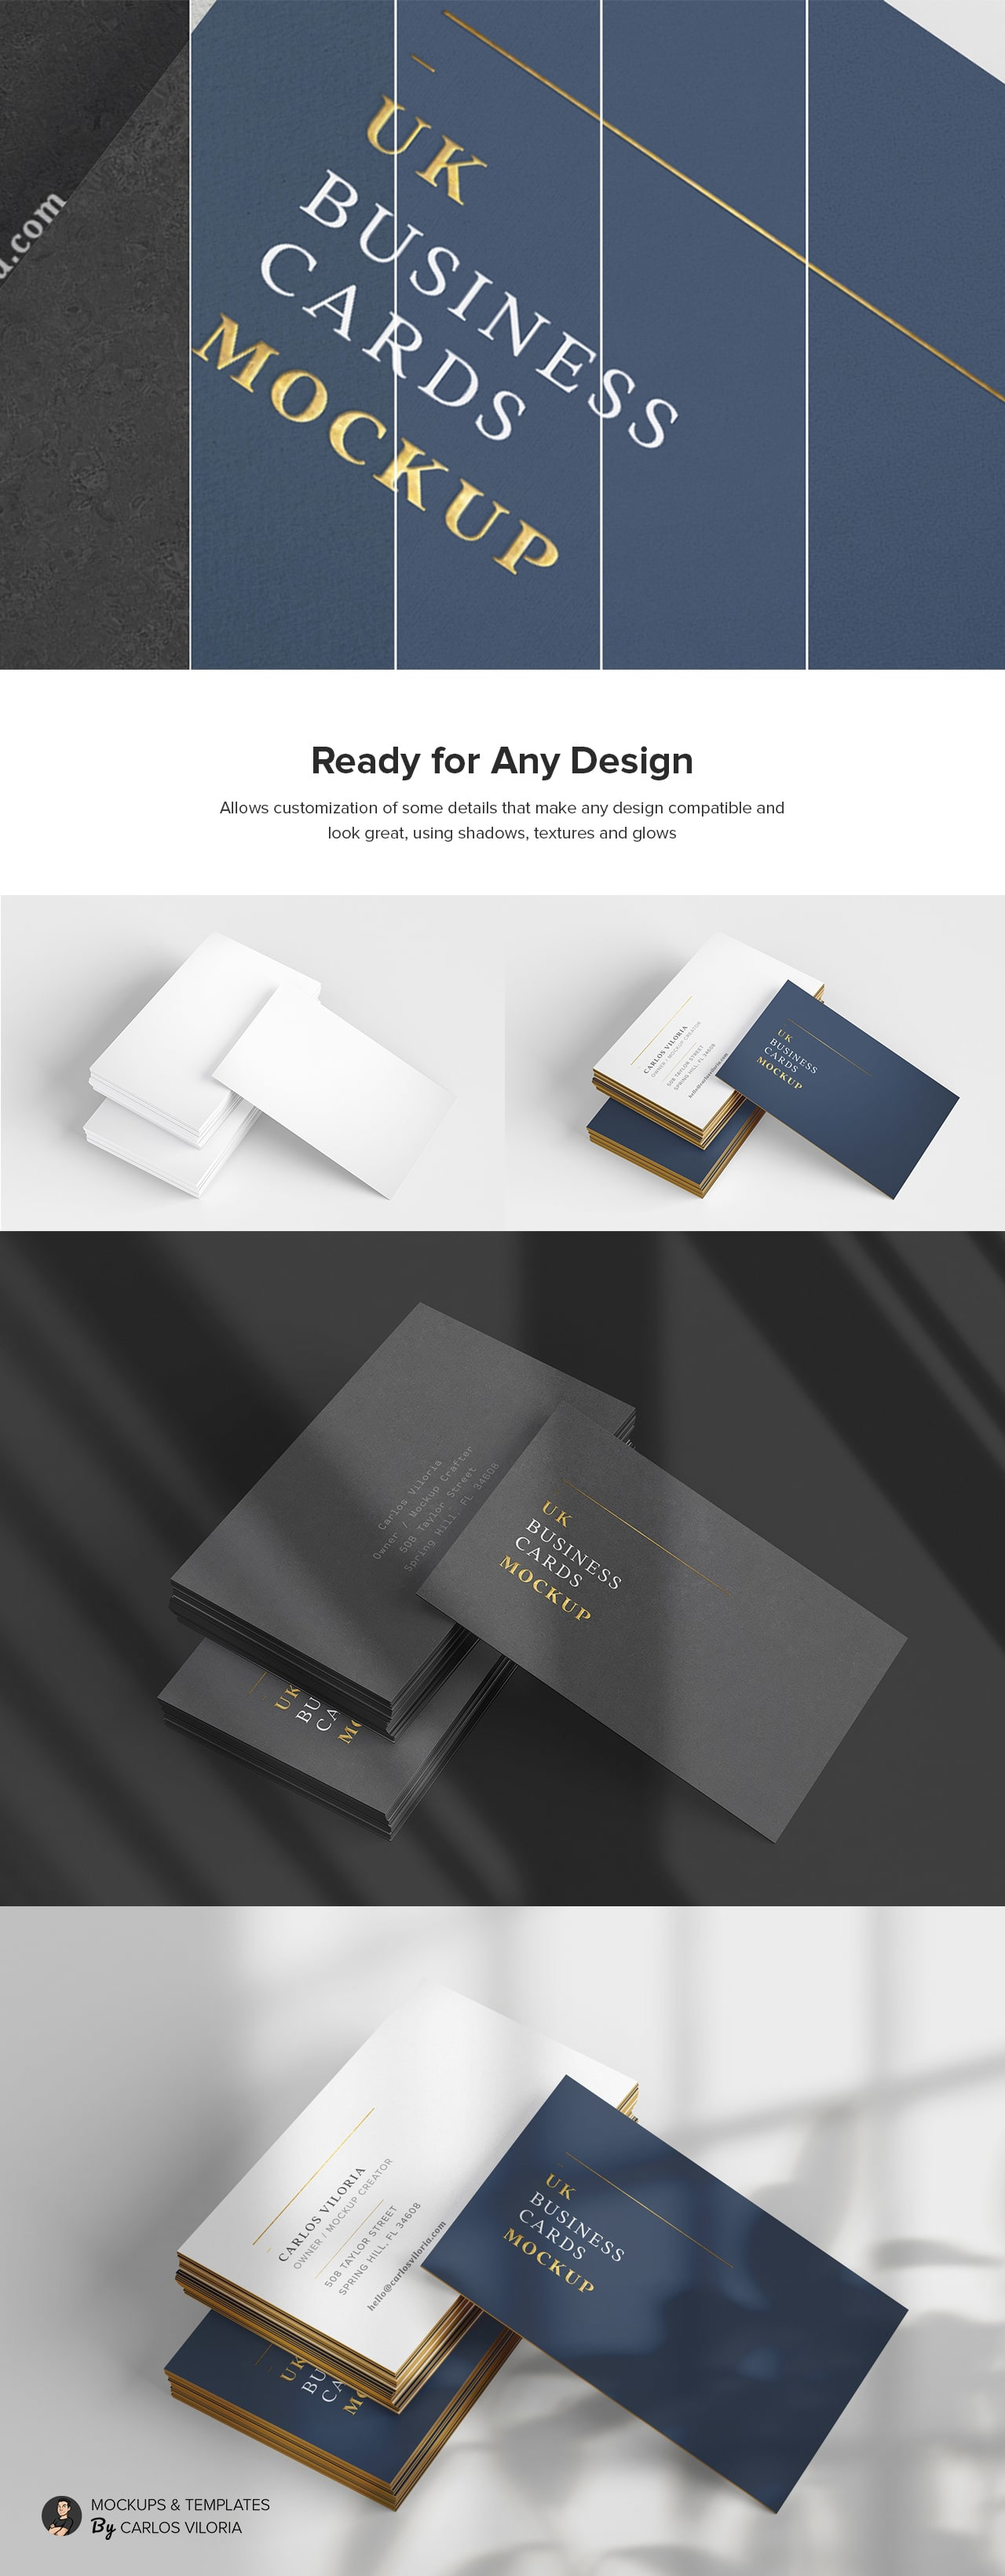 Download Business Card Design Mockup Psd Free Download Download Free And Premium Psd Mockup Templates And Design Assets PSD Mockup Templates